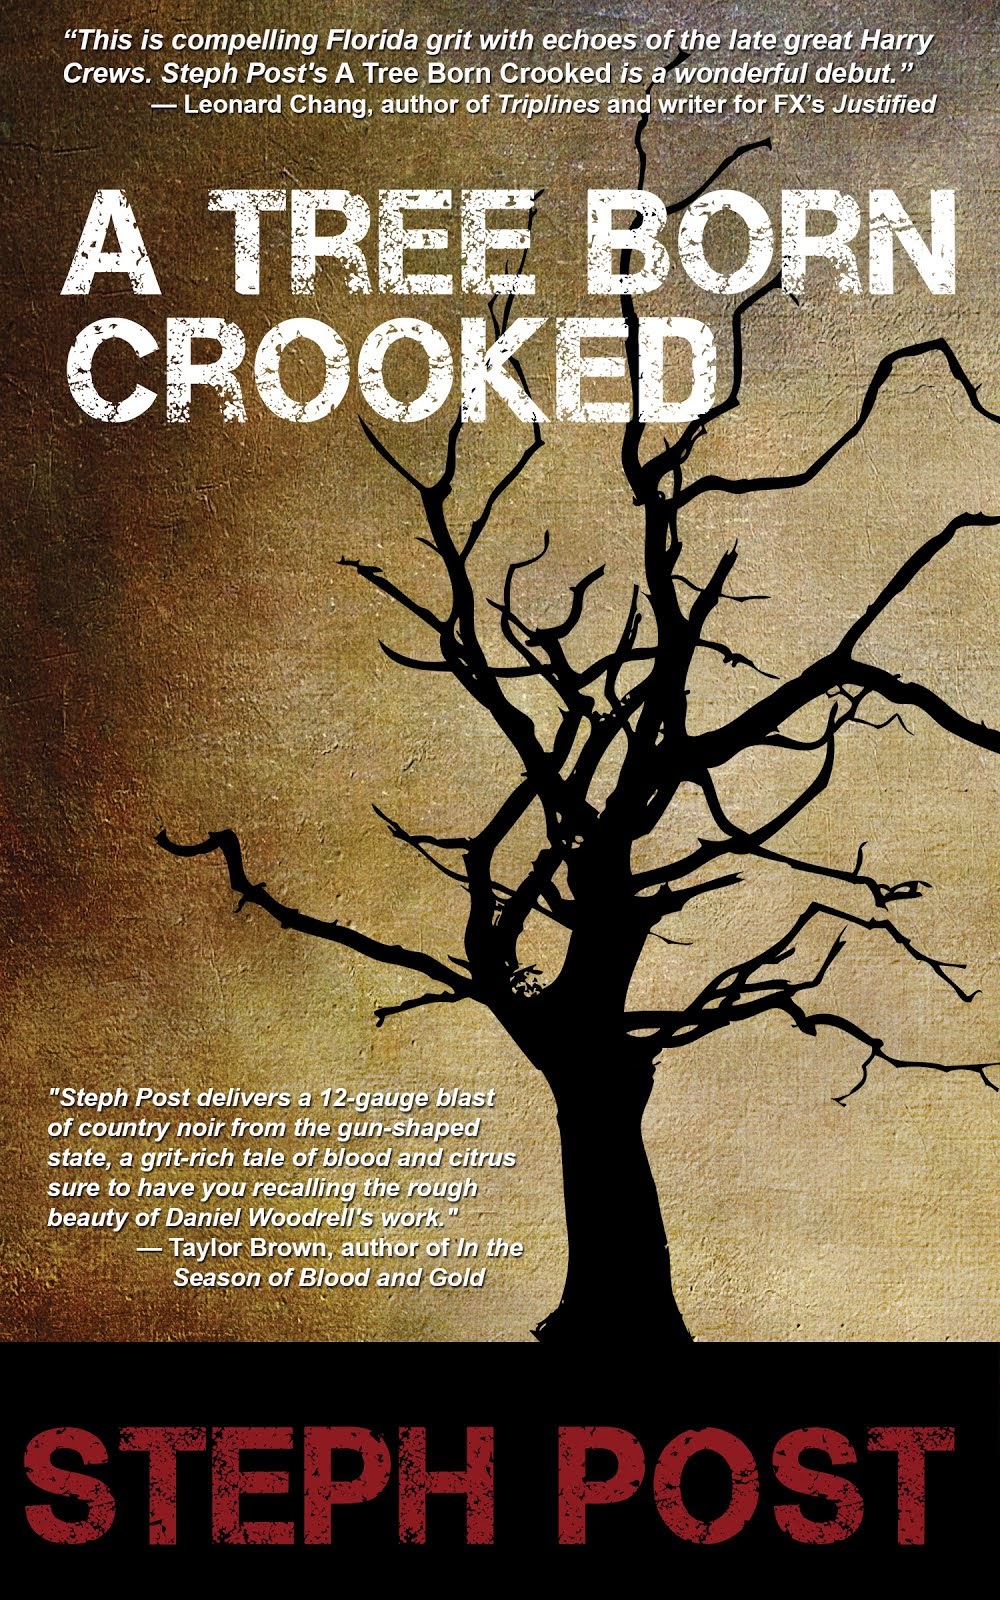 http://www.amazon.com/Tree-Born-Crooked-Steph-Post-ebook/dp/B00NAFBSSU